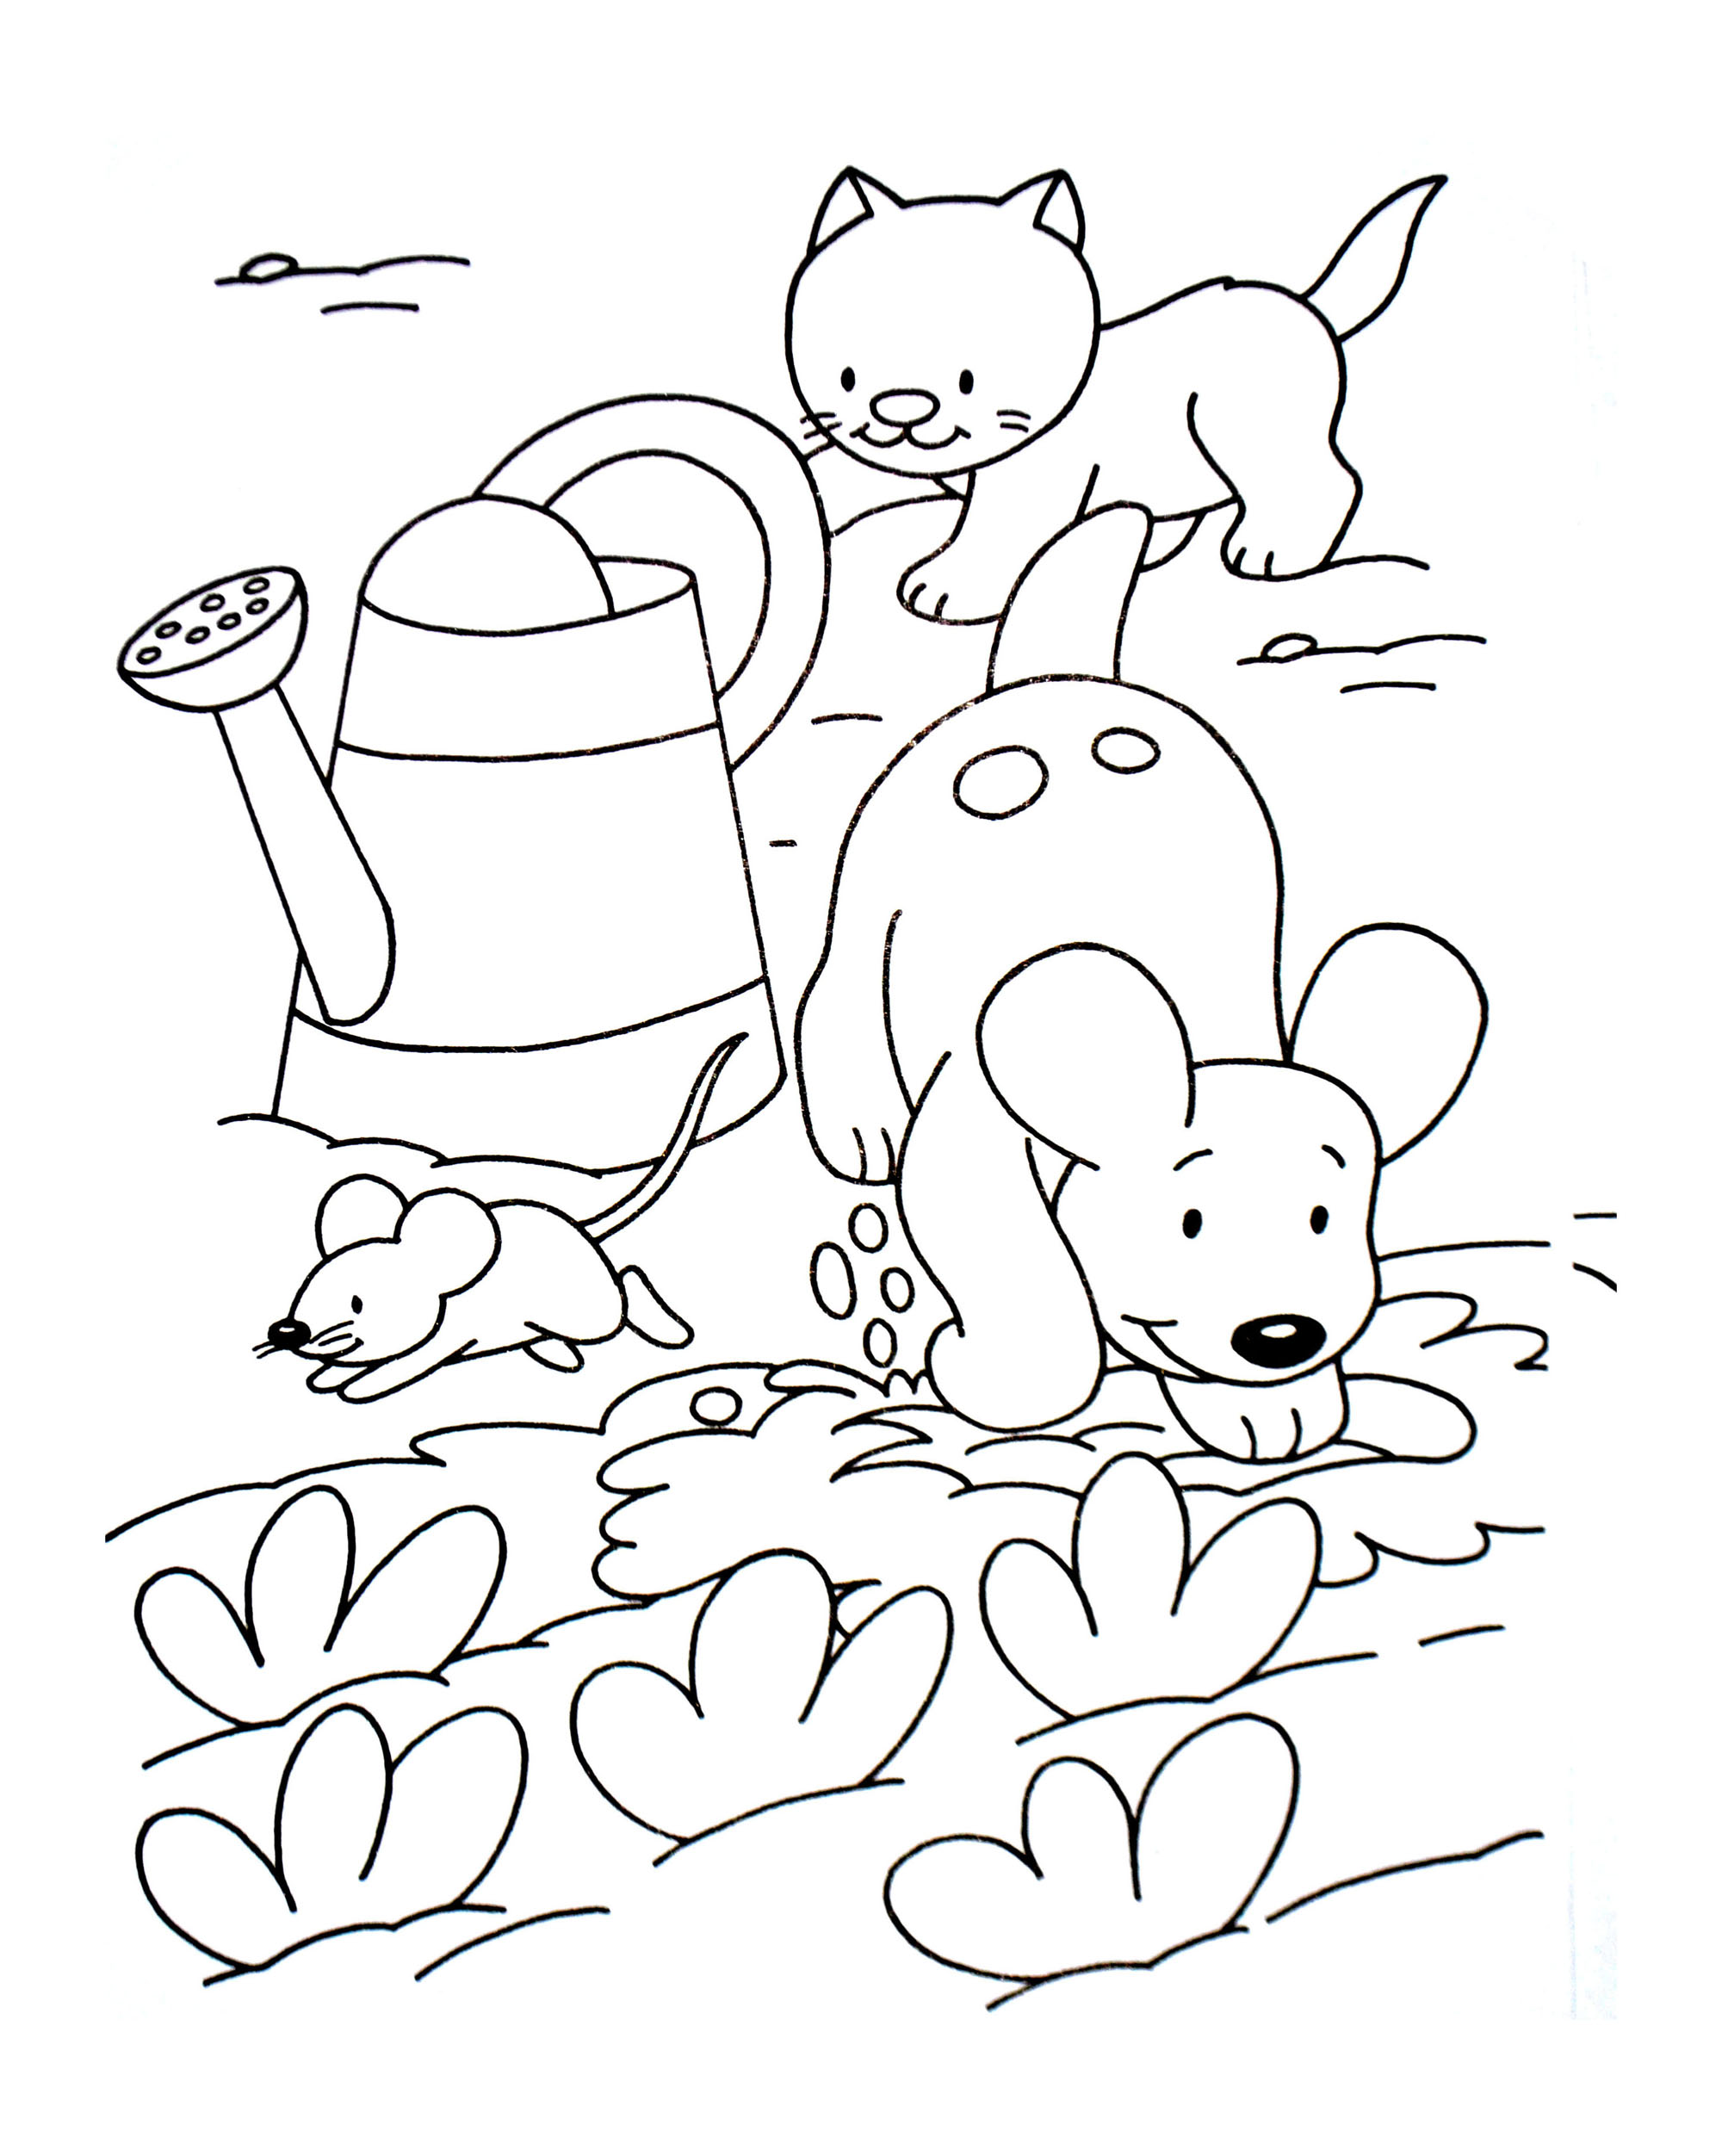 Dog Cat And Mouse Animal Coloring Pages For Kids To Print Color